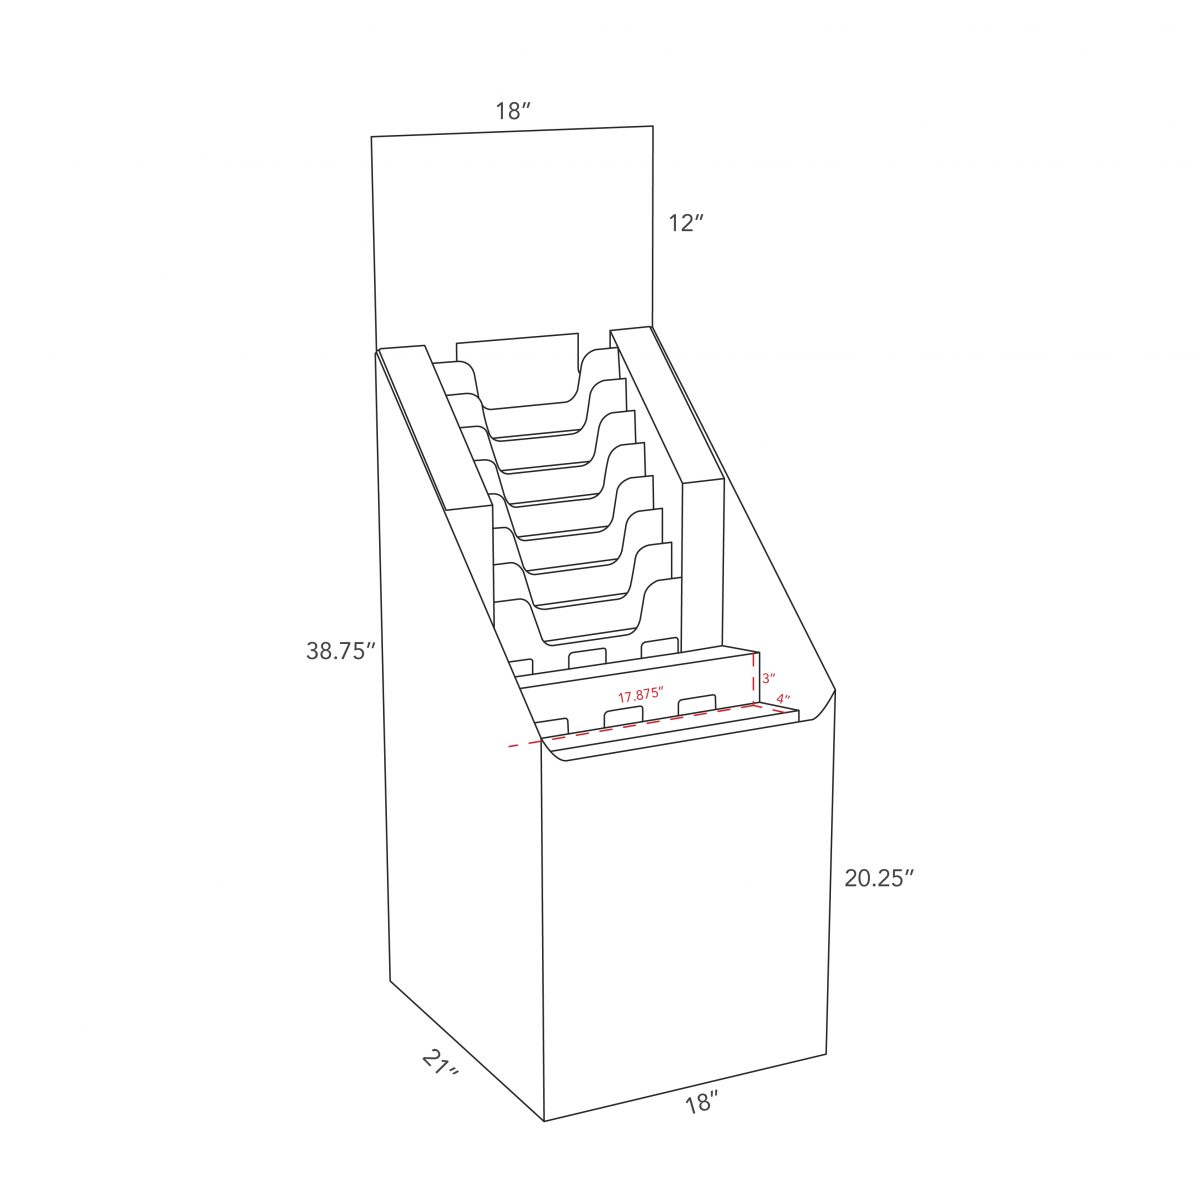 Dimensions of Cardboard floor display with multiple file holders, a header and 2 shelves, size of a quarter pallet